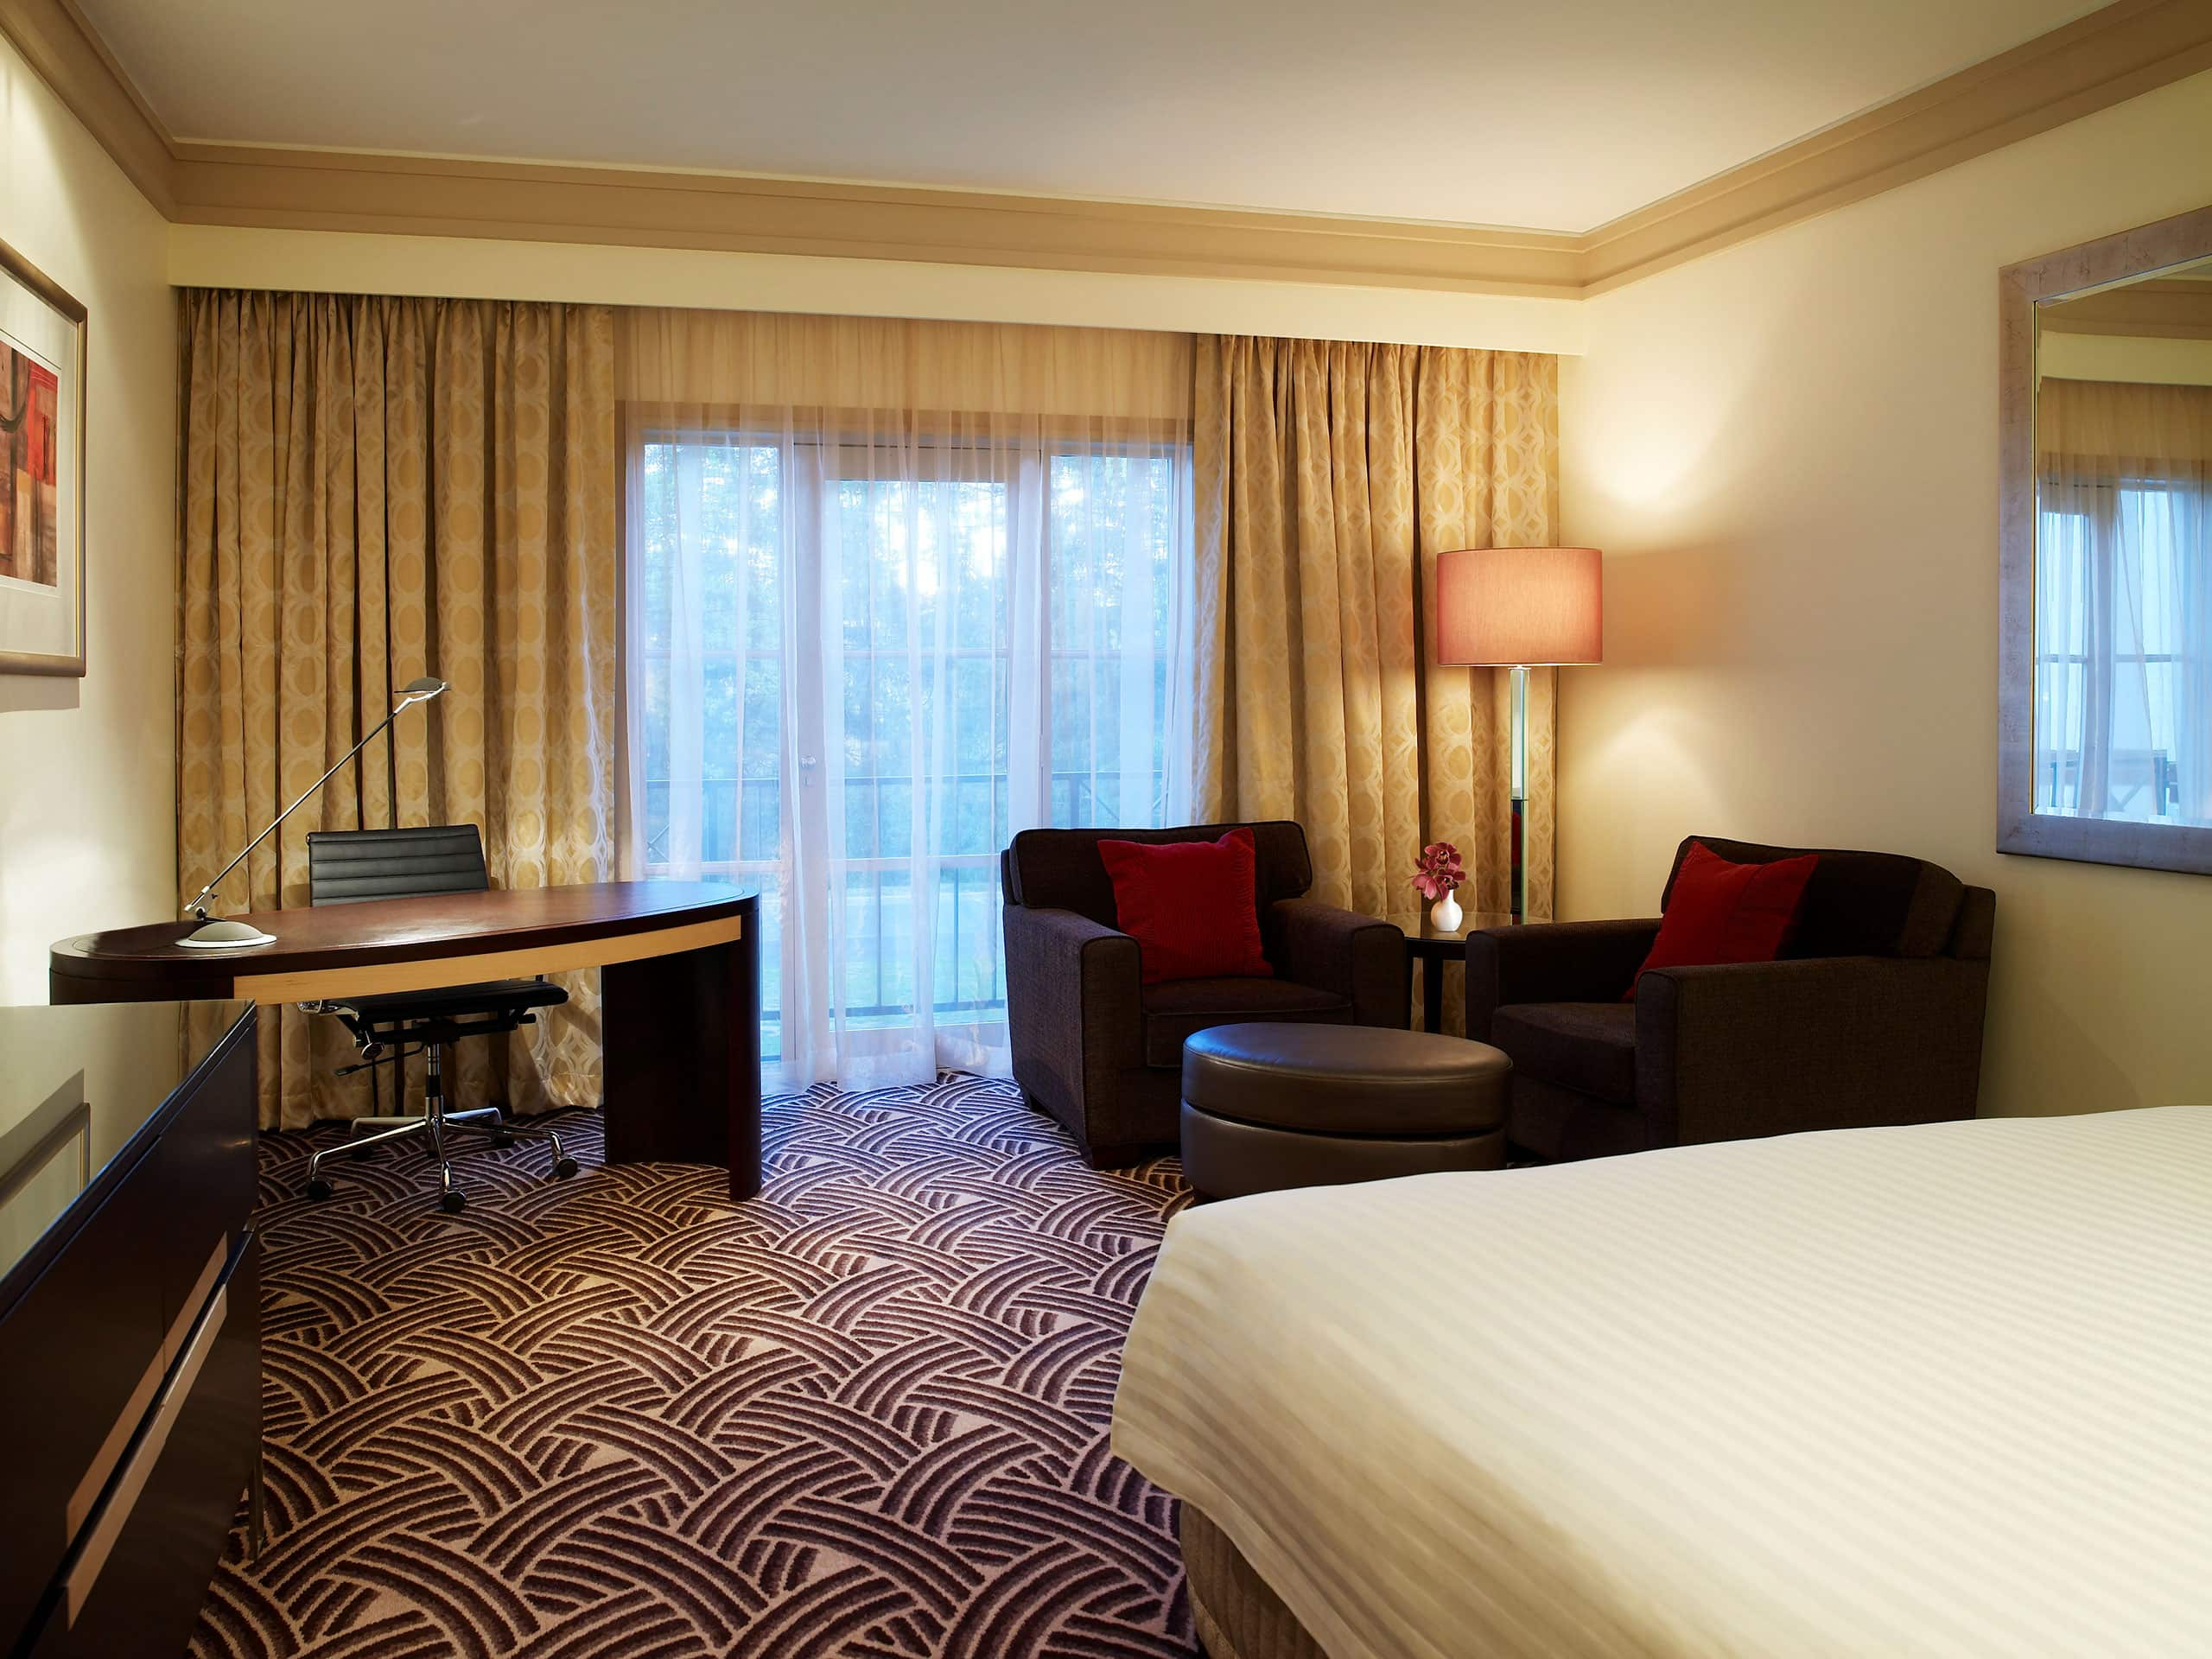 2 Bedroom Accommodation Canberra 5 Star Hotel Accommodation In Canberra Hyatt Hotel Canberra